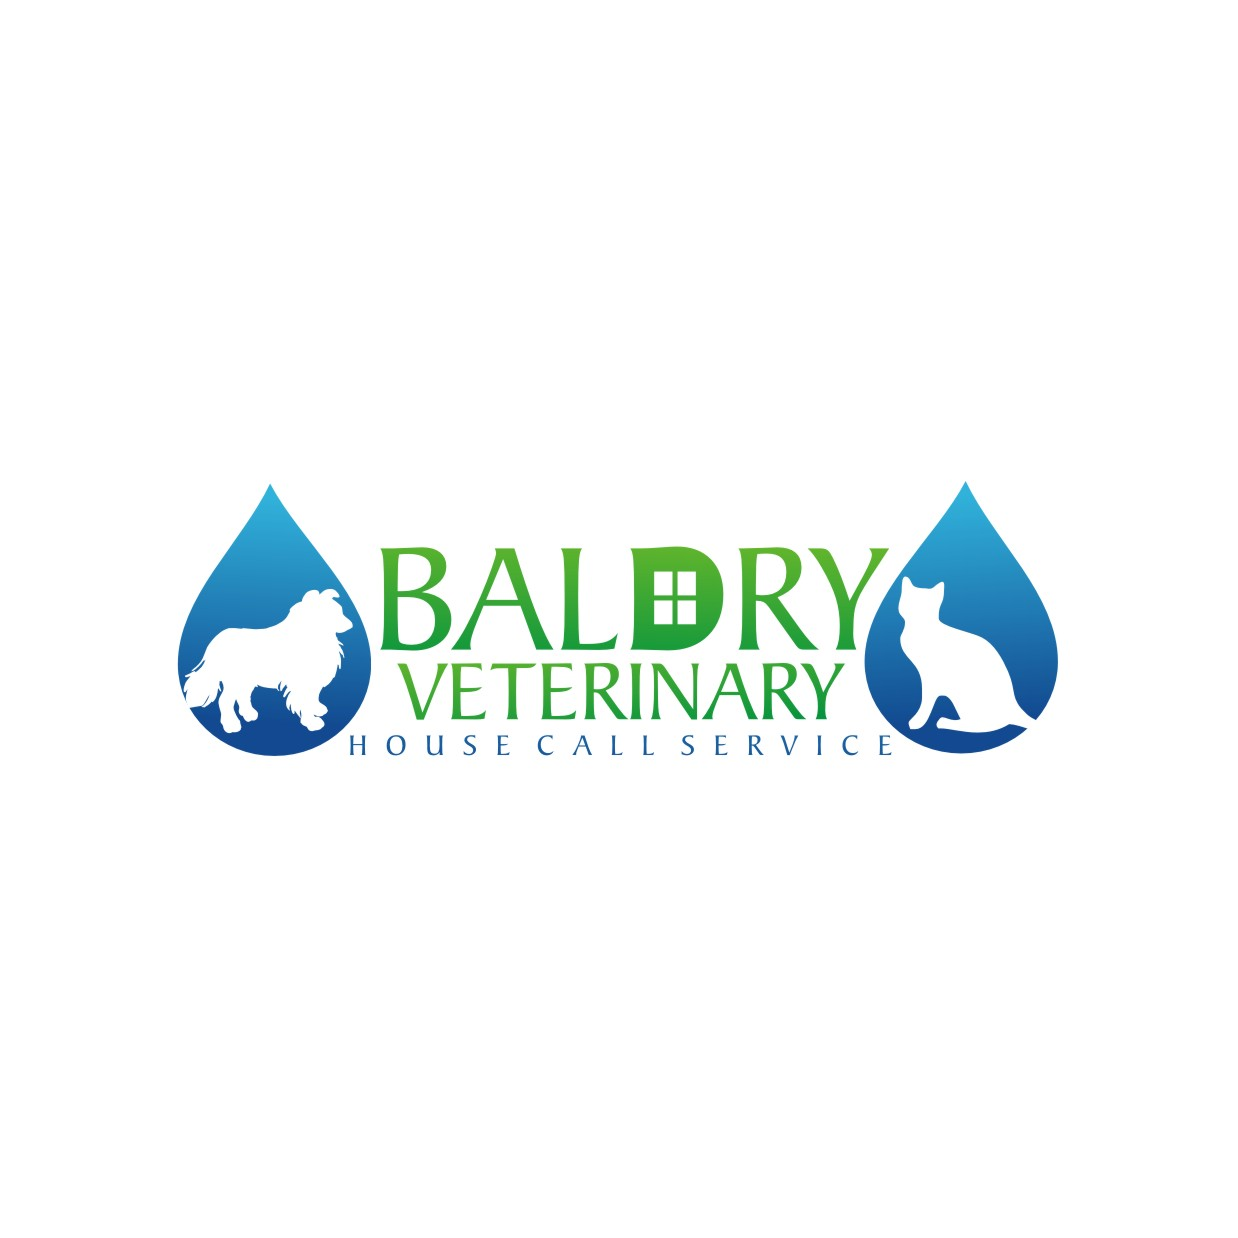 Logo Design by jalal - Entry No. 192 in the Logo Design Contest Captivating Logo Design for Baldry Veterinary House Call Service.